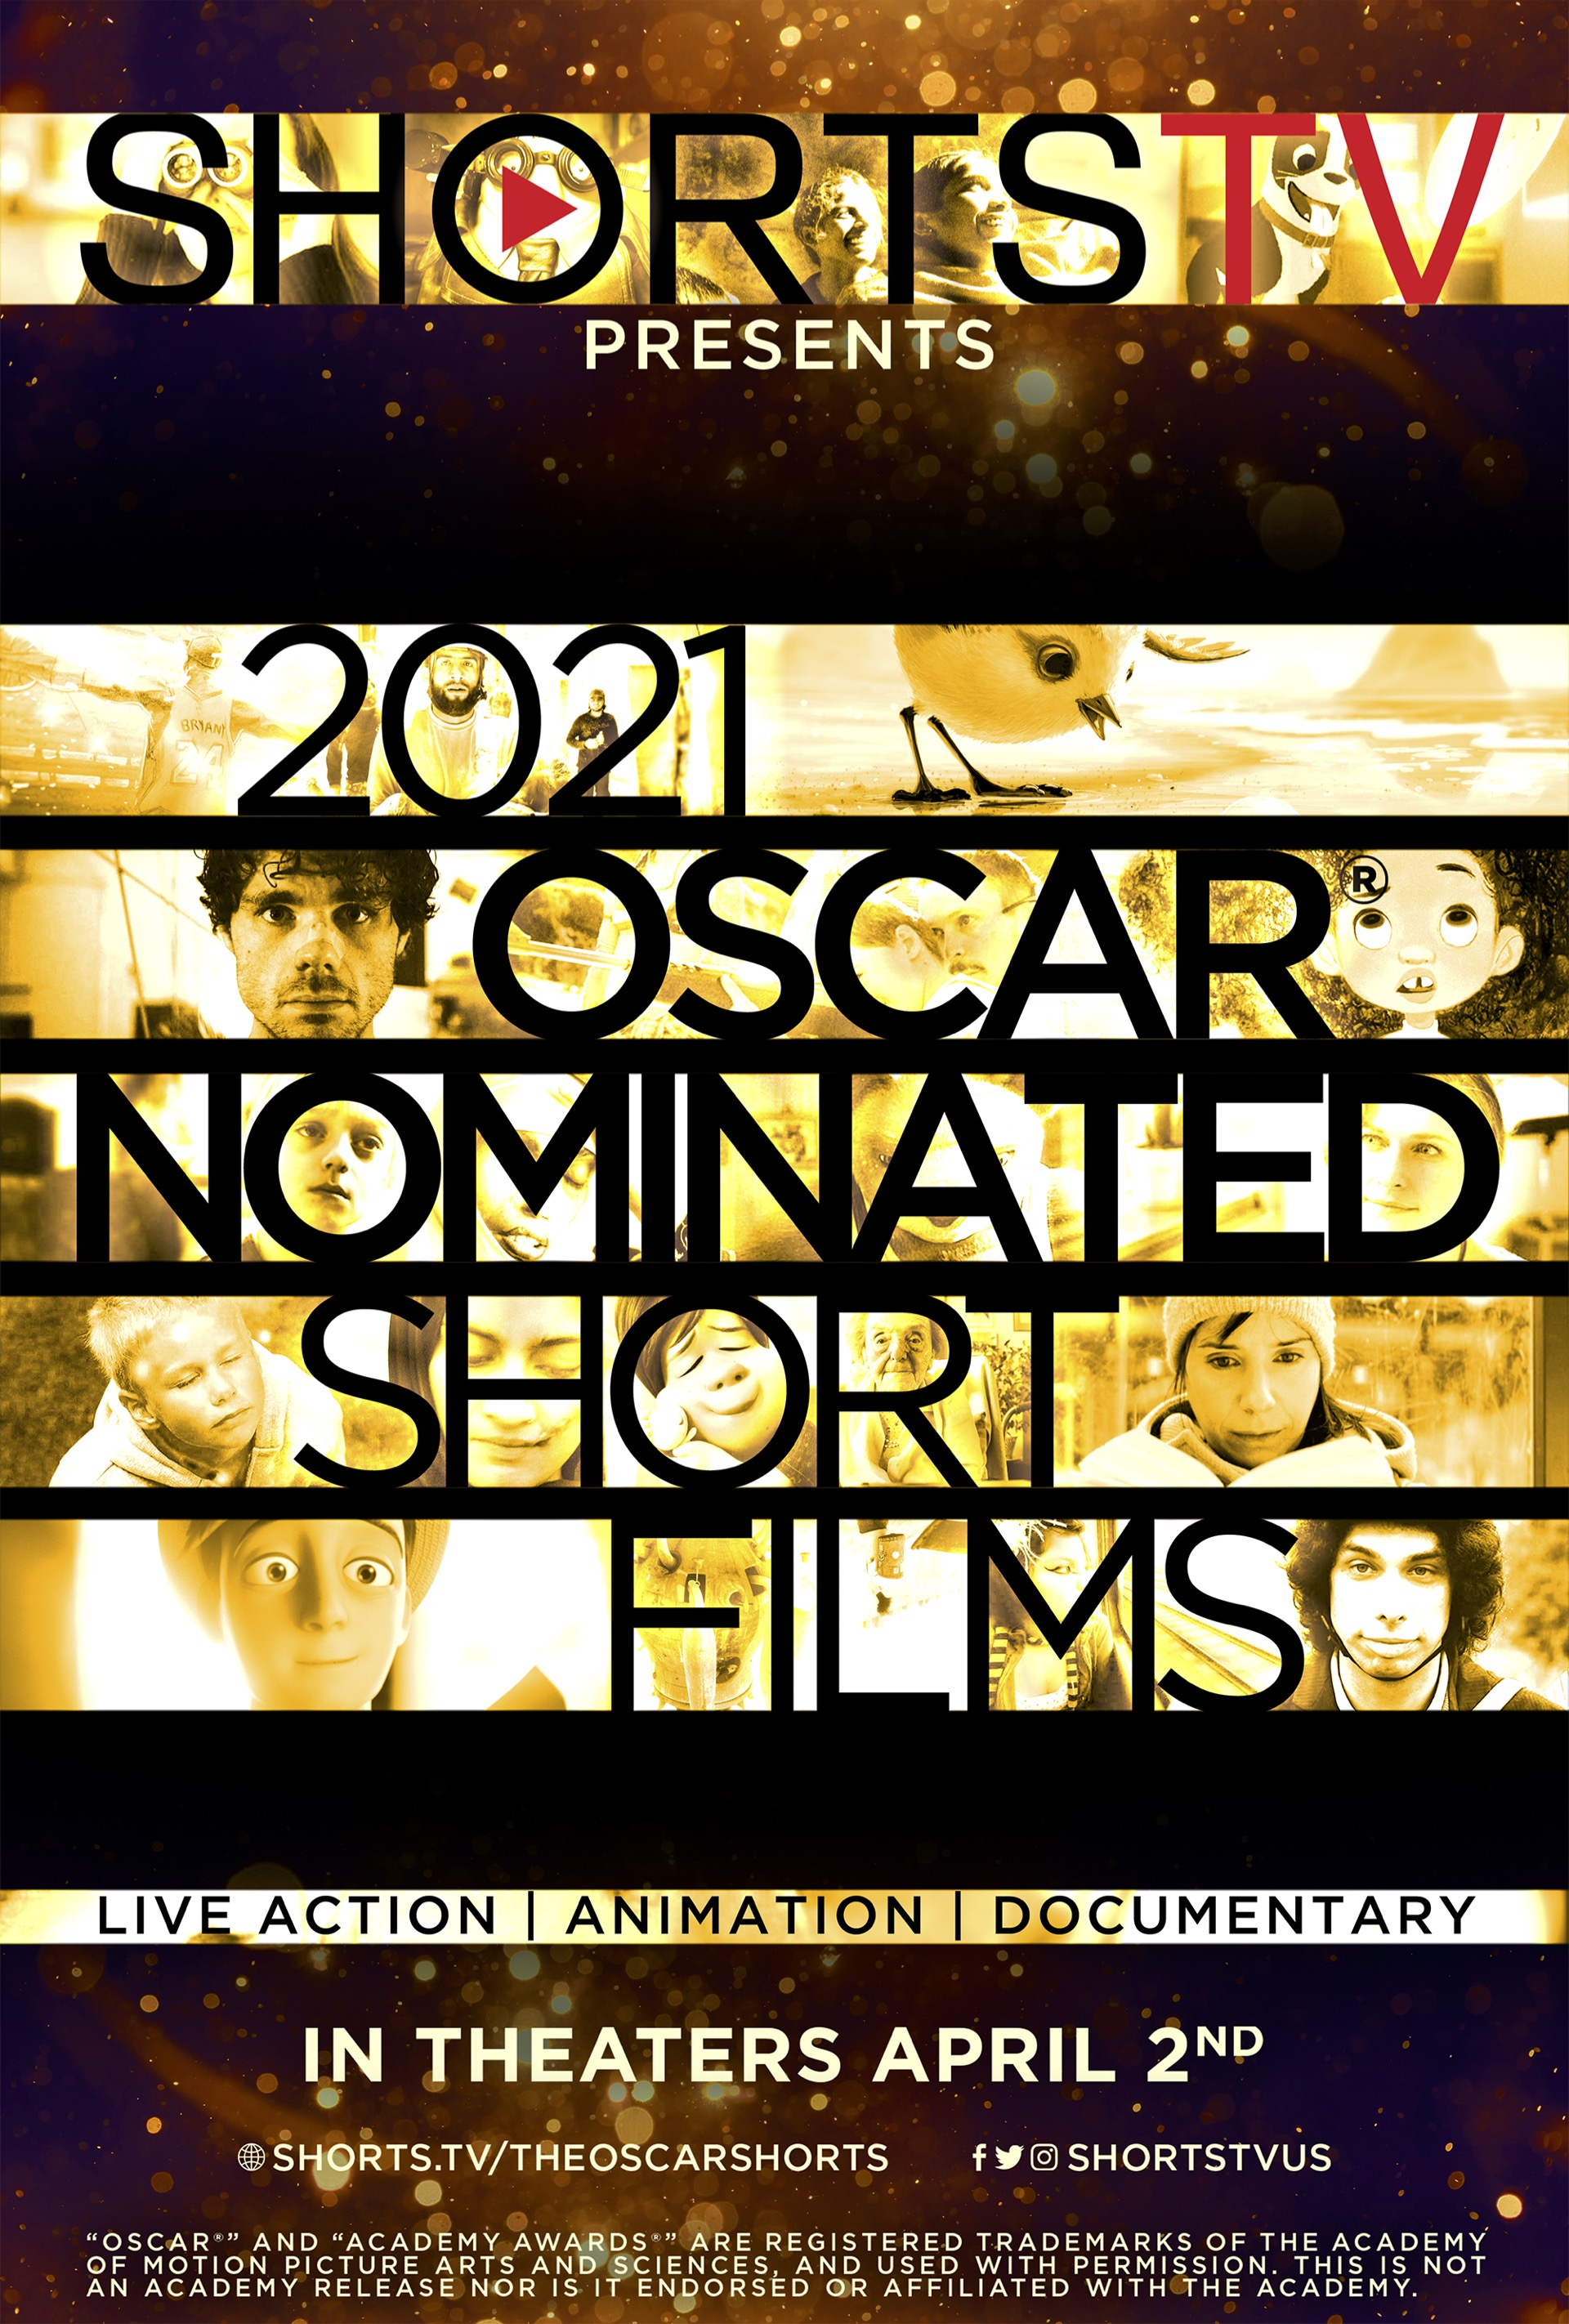 2021 Oscar Nominated Shorts